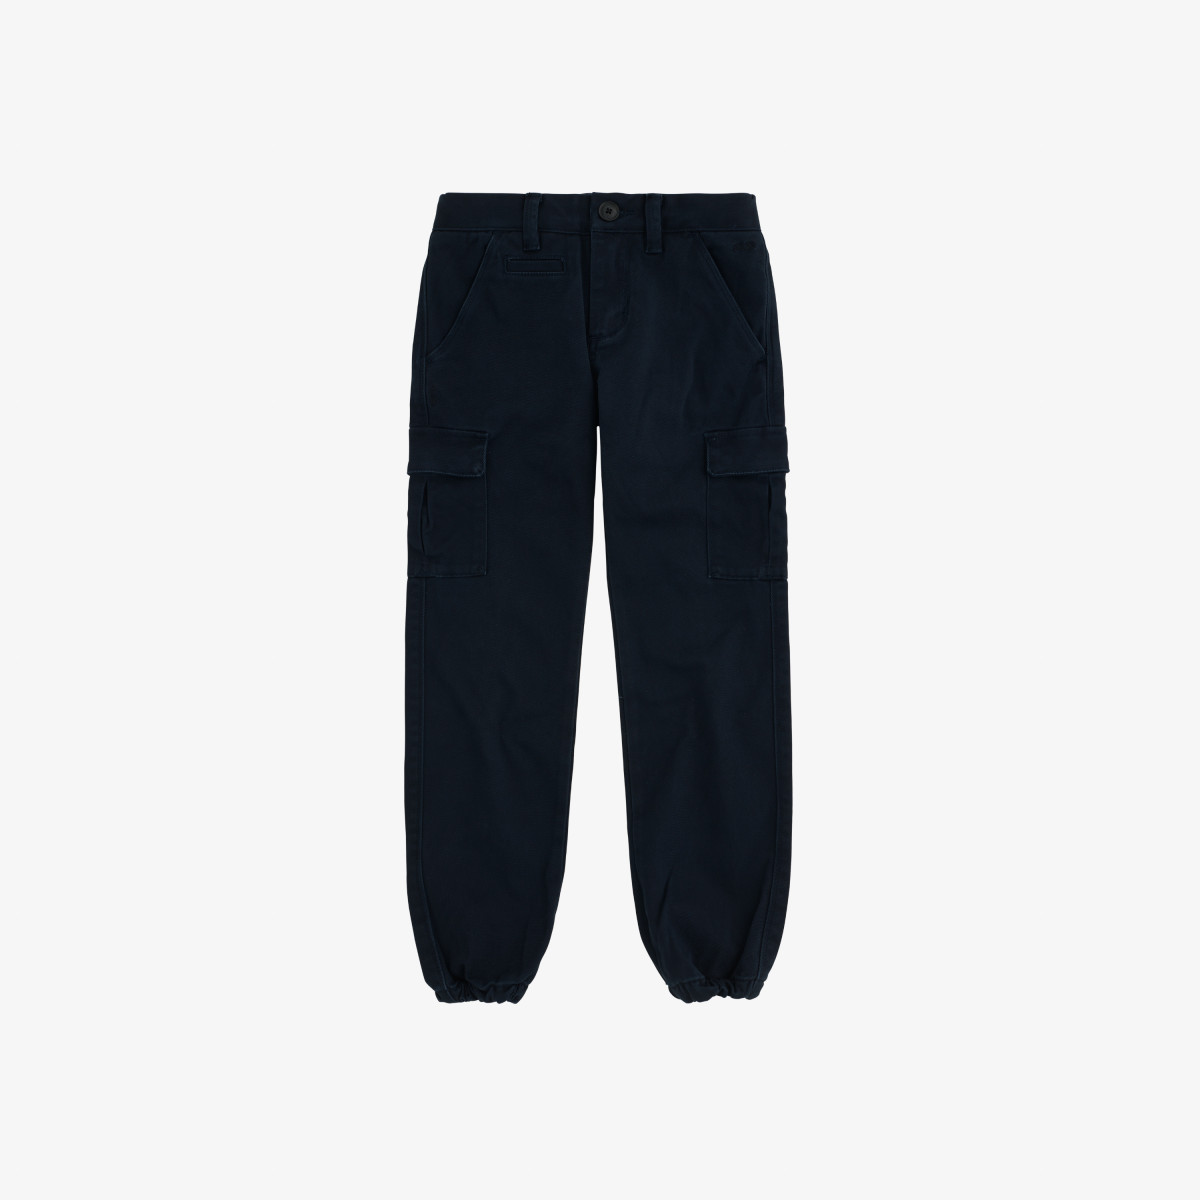 BOY'S PANT MILITARY NAVY BLUE